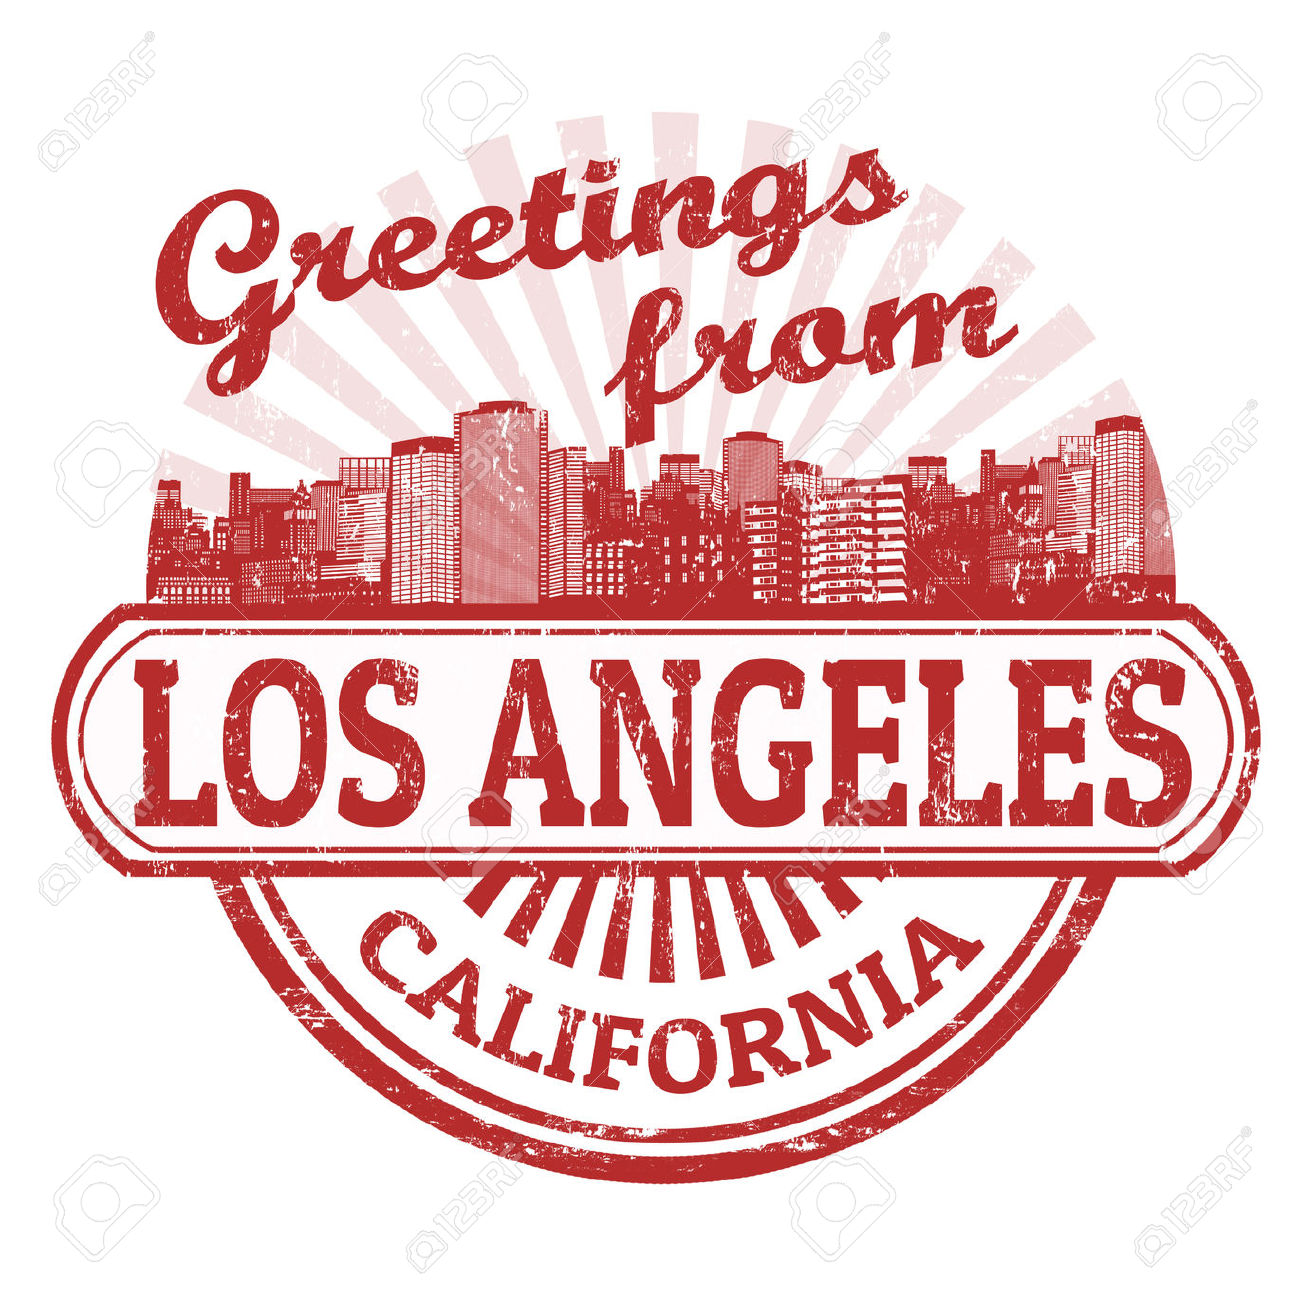 Hd clipart los angeles.